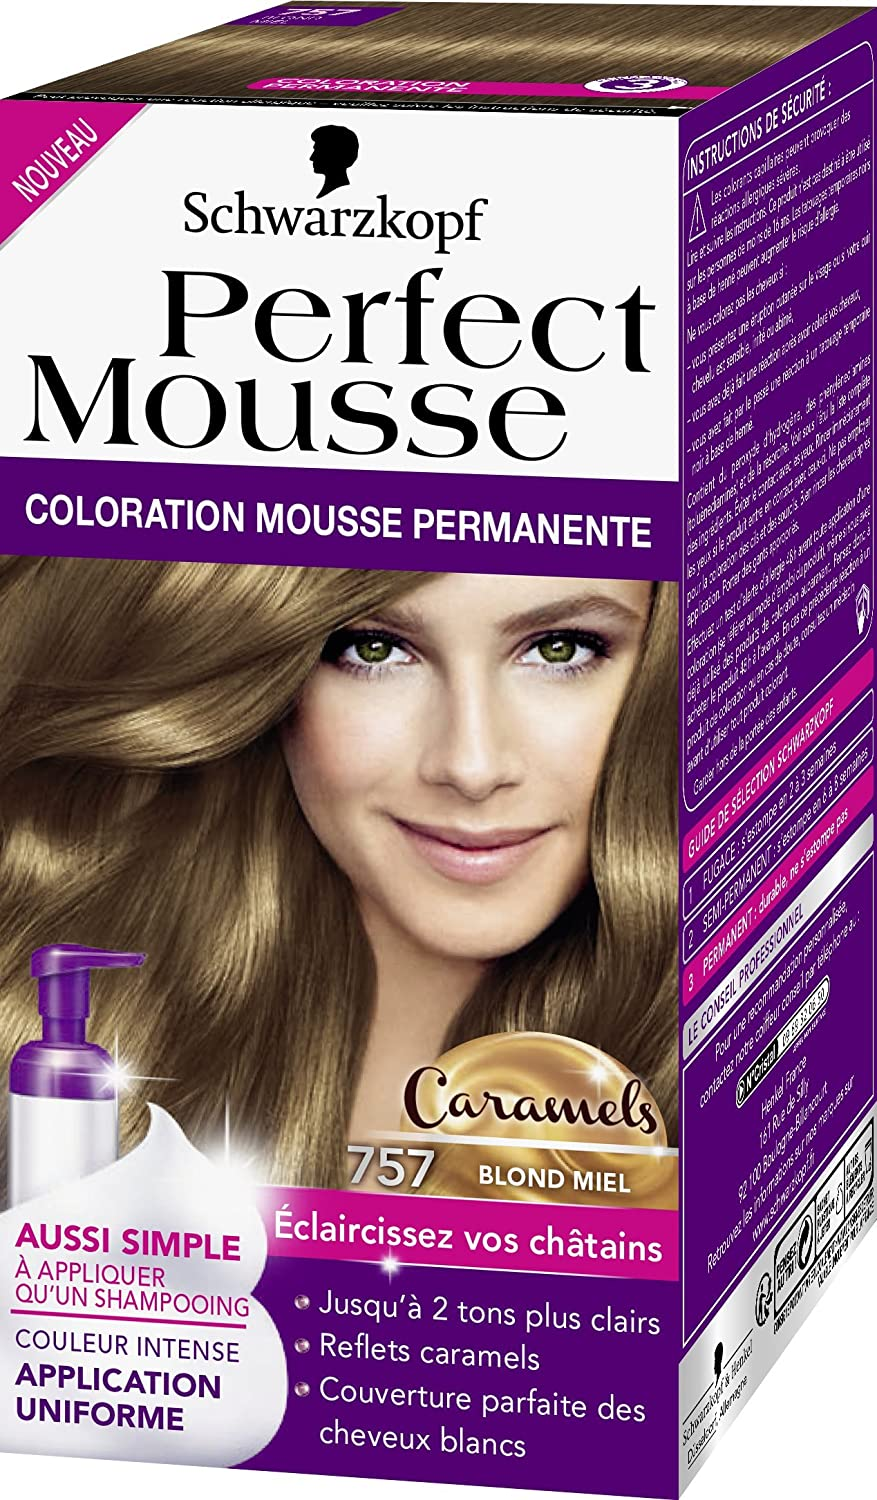 schwarzkopf perfect mousse coloration permanente 757 caramels blond miel 35 ml - Coloration Sans Ammoniaque Schwarzkopf